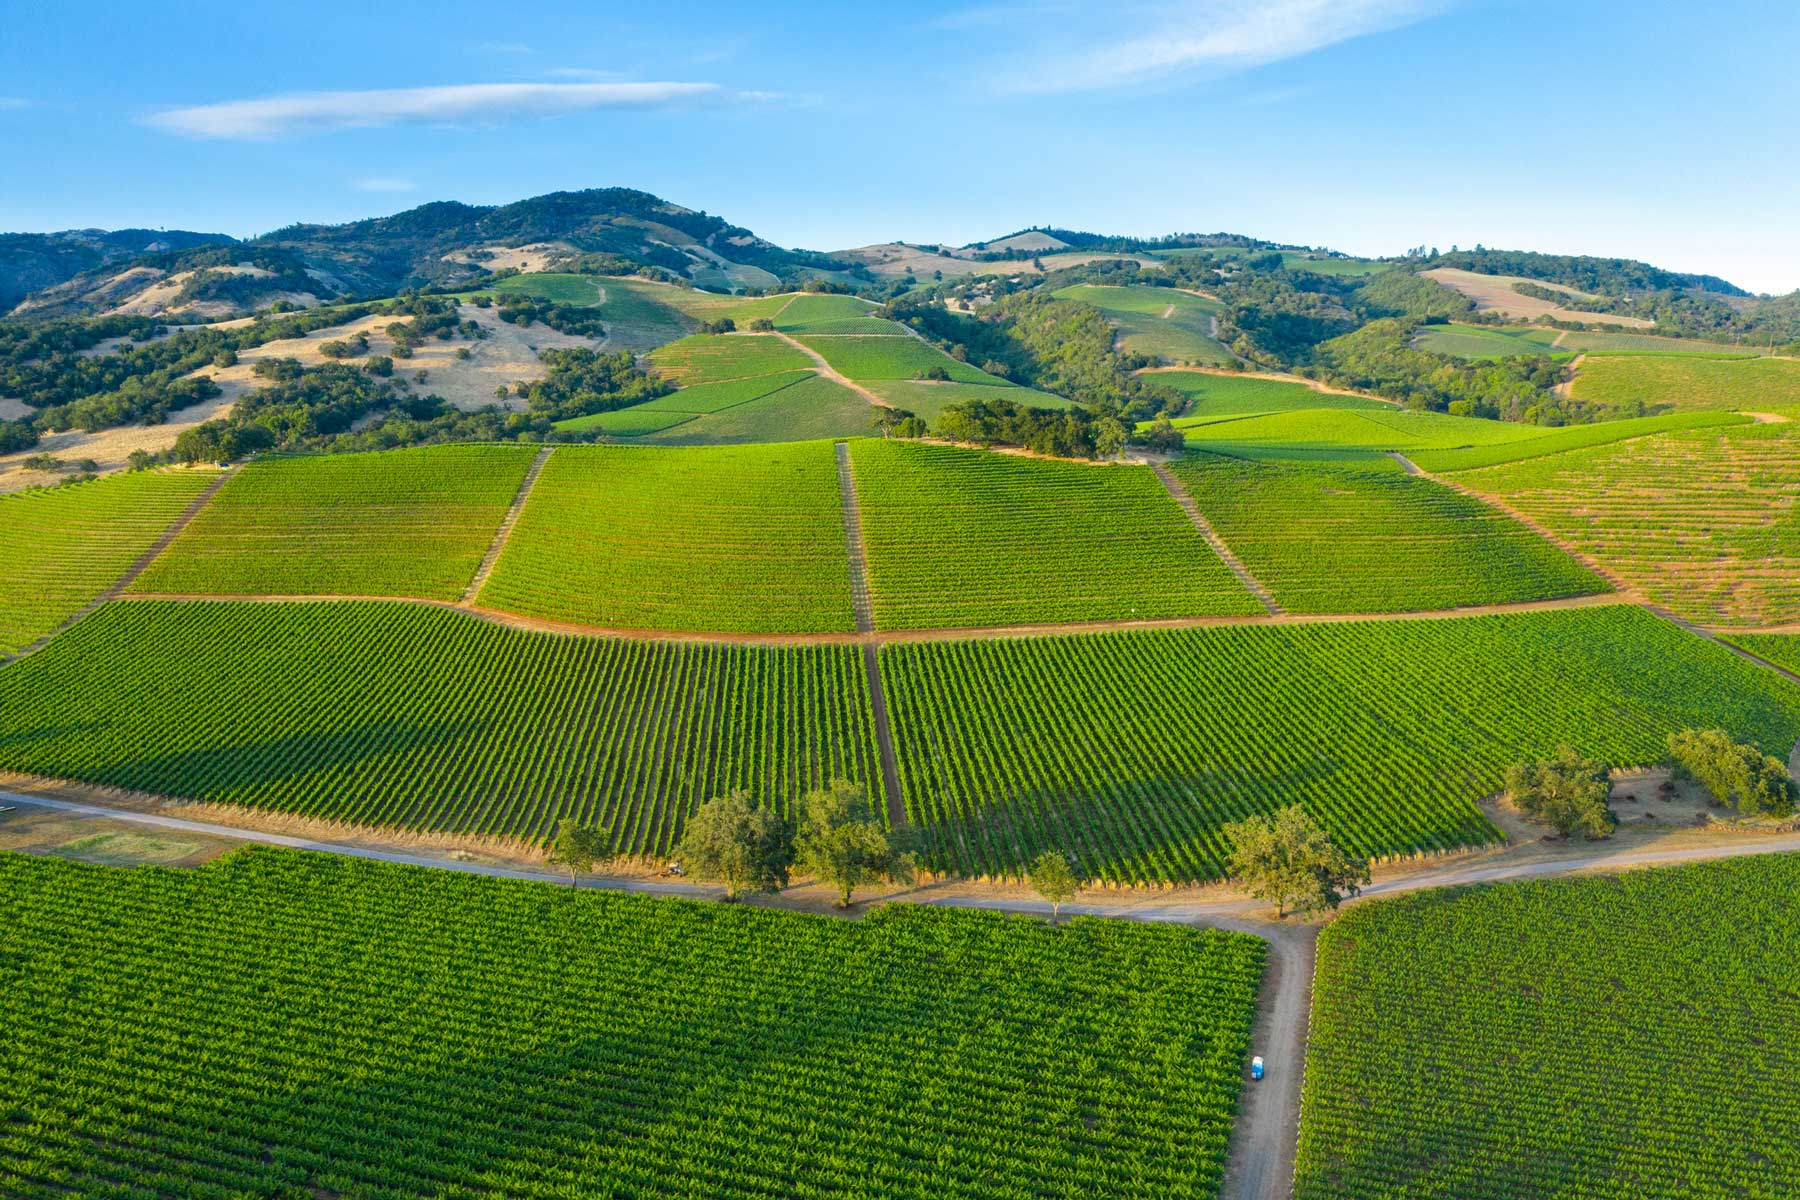 Aerial view of Sonoma Country California on a bright sunny day